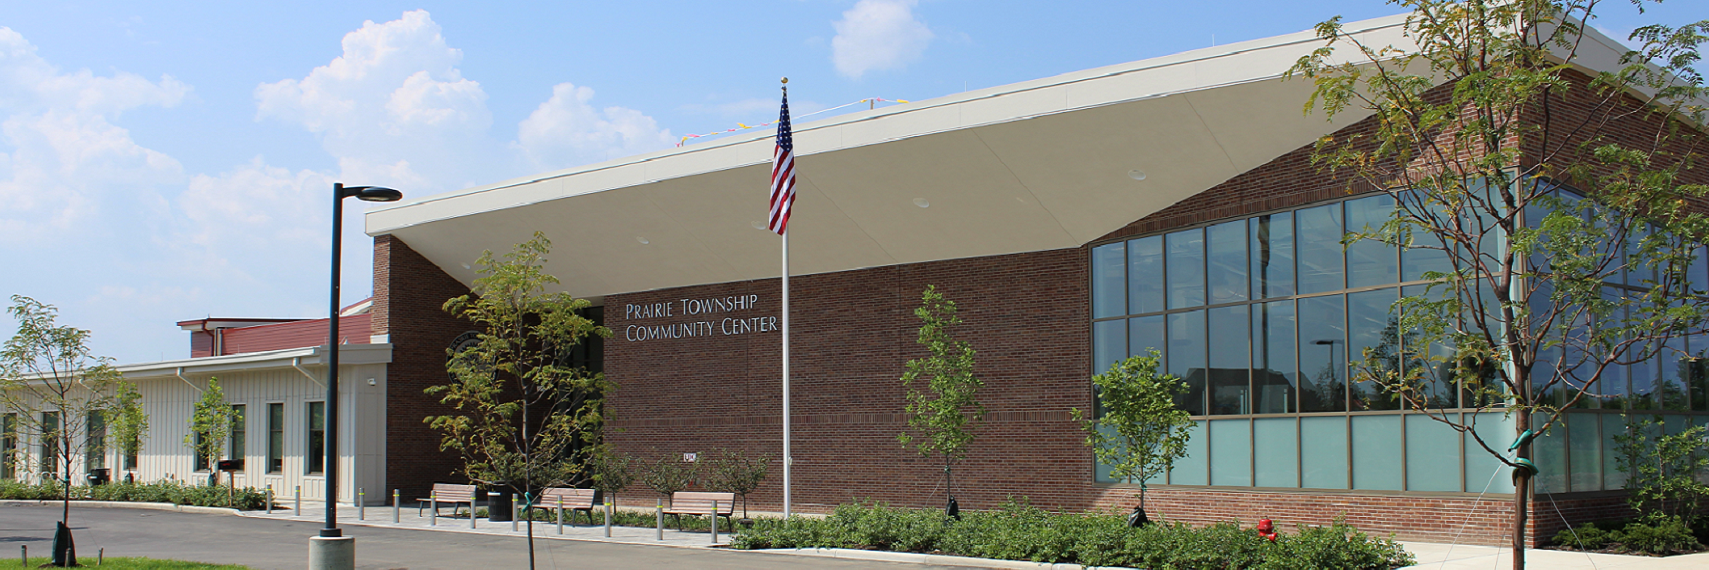 community center prairie township oh official website